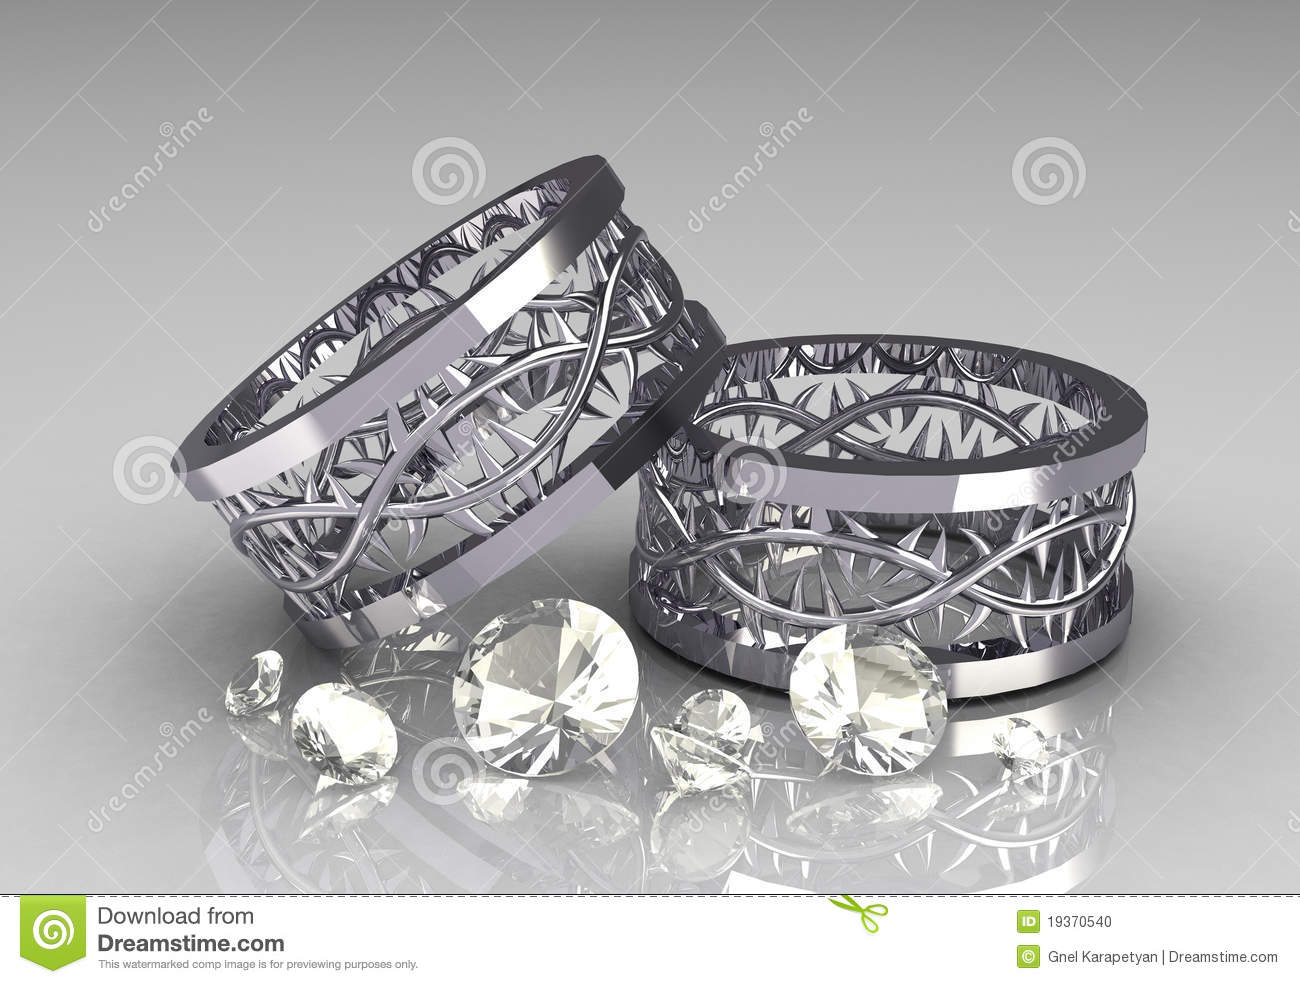 stock photo pair christs crown white gold wedding bands image gold wedding bands Pair of Christs Crown White Gold Wedding Bands